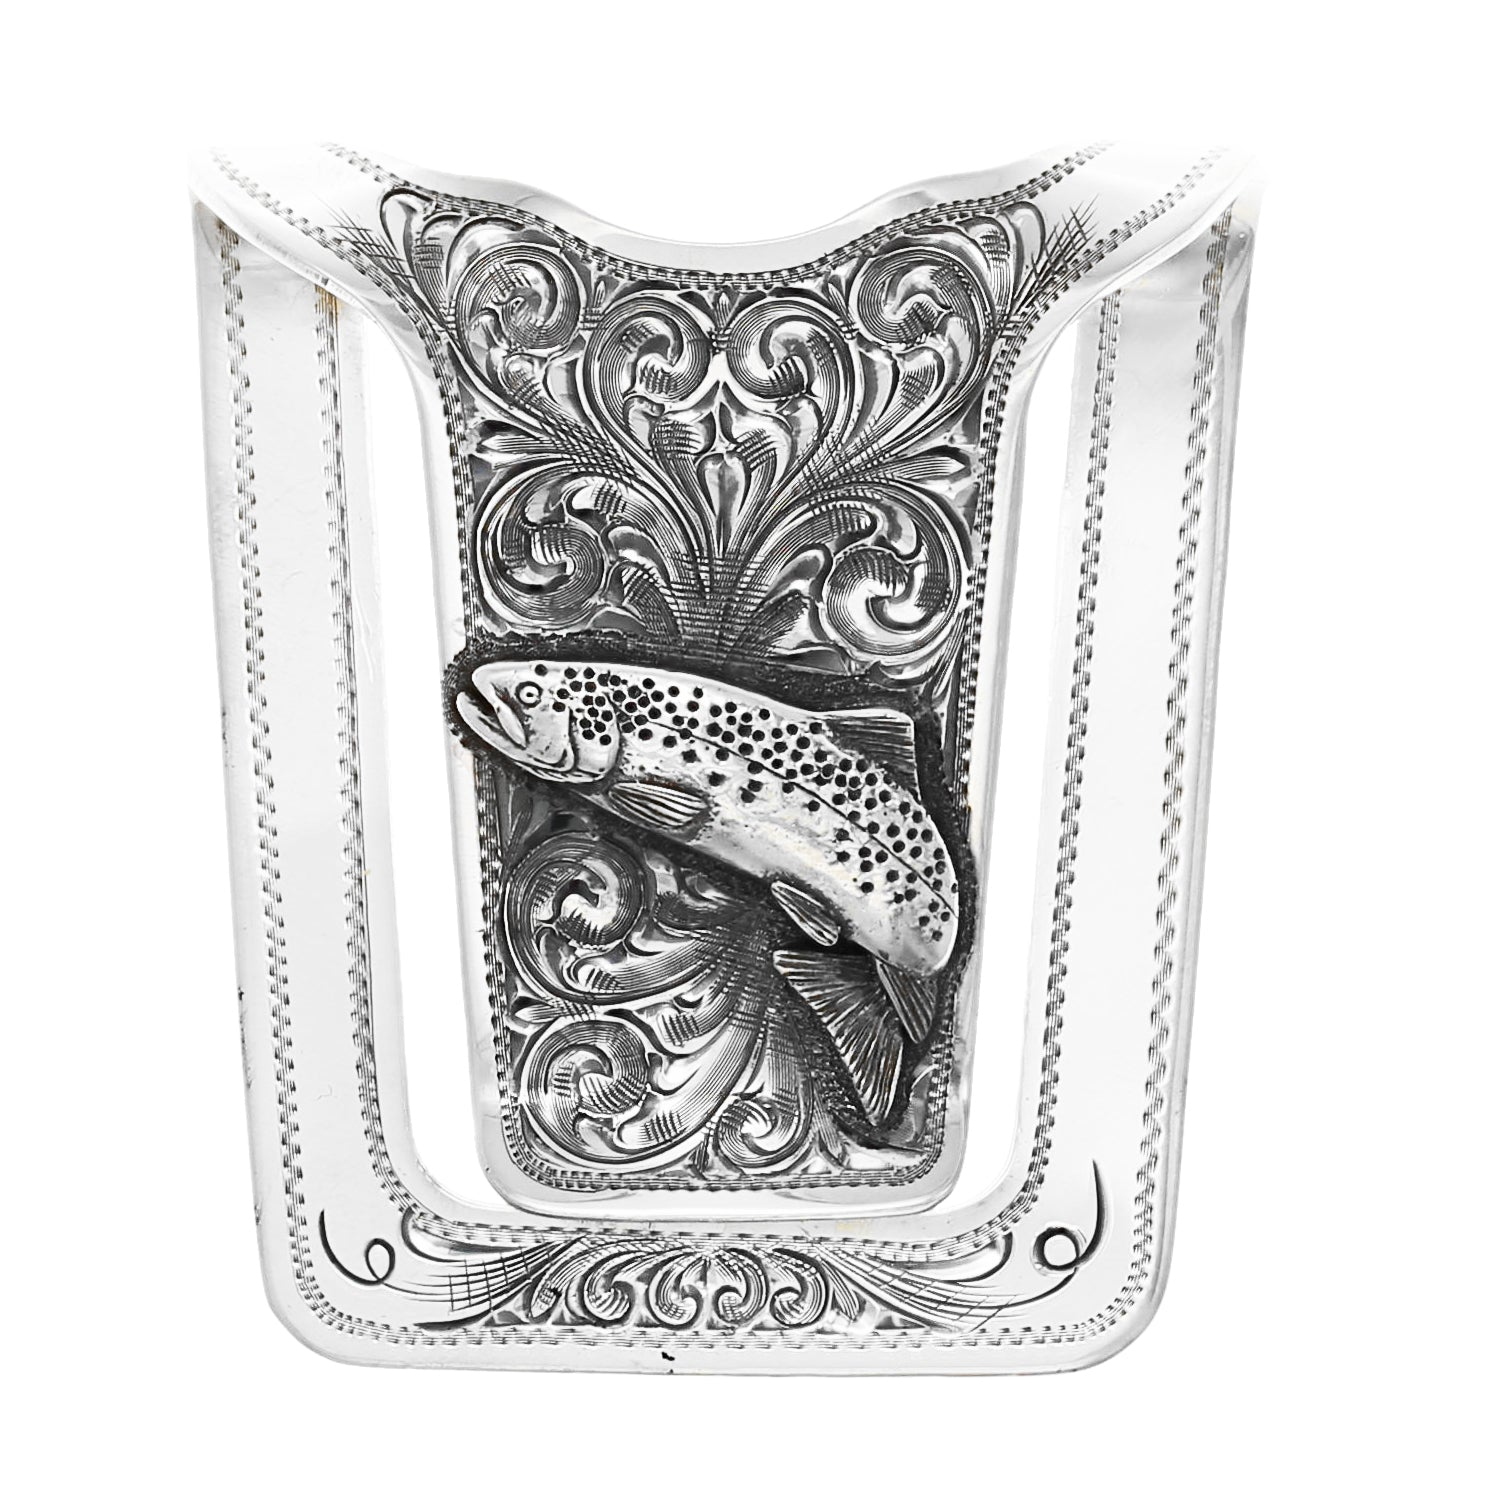 Silver Creek 1811 Silver Trout Money Clip